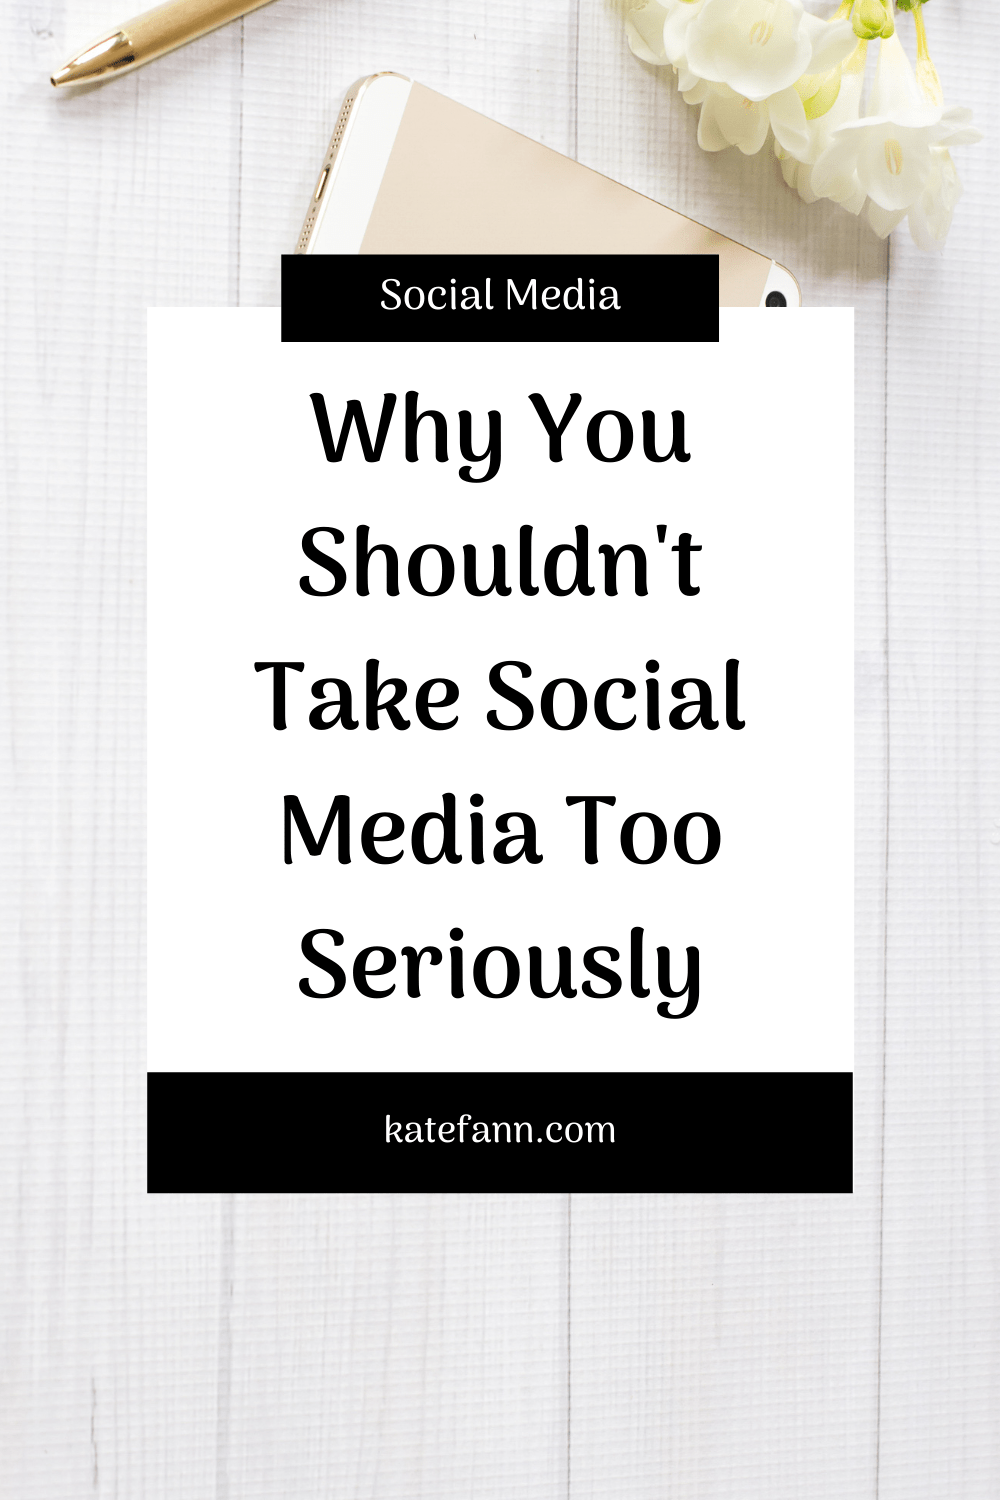 Why You Shouldn't Take Social Media Too Seriously